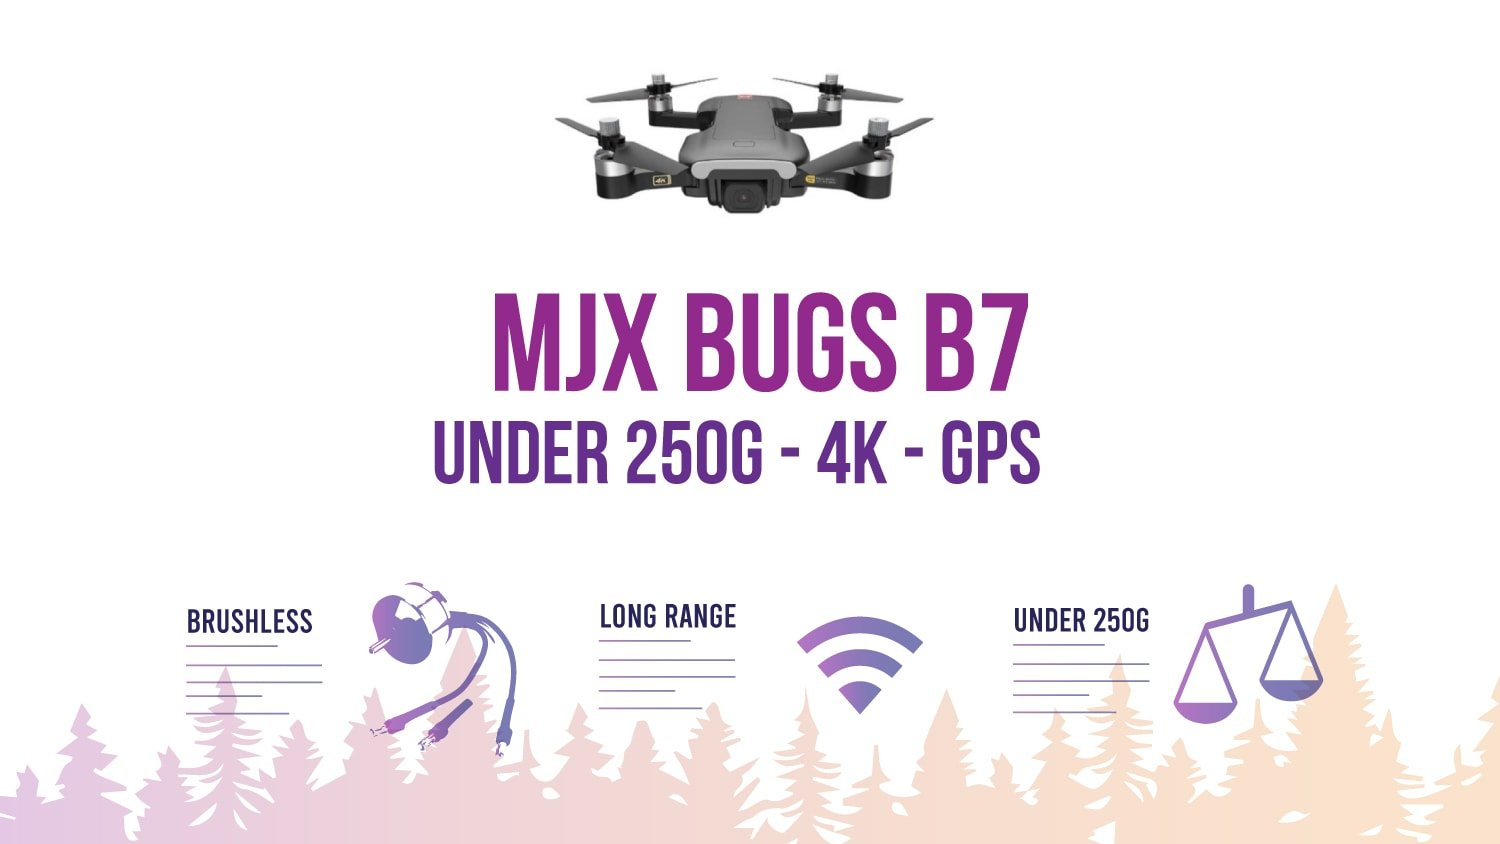 mjx bugs b7 drone review